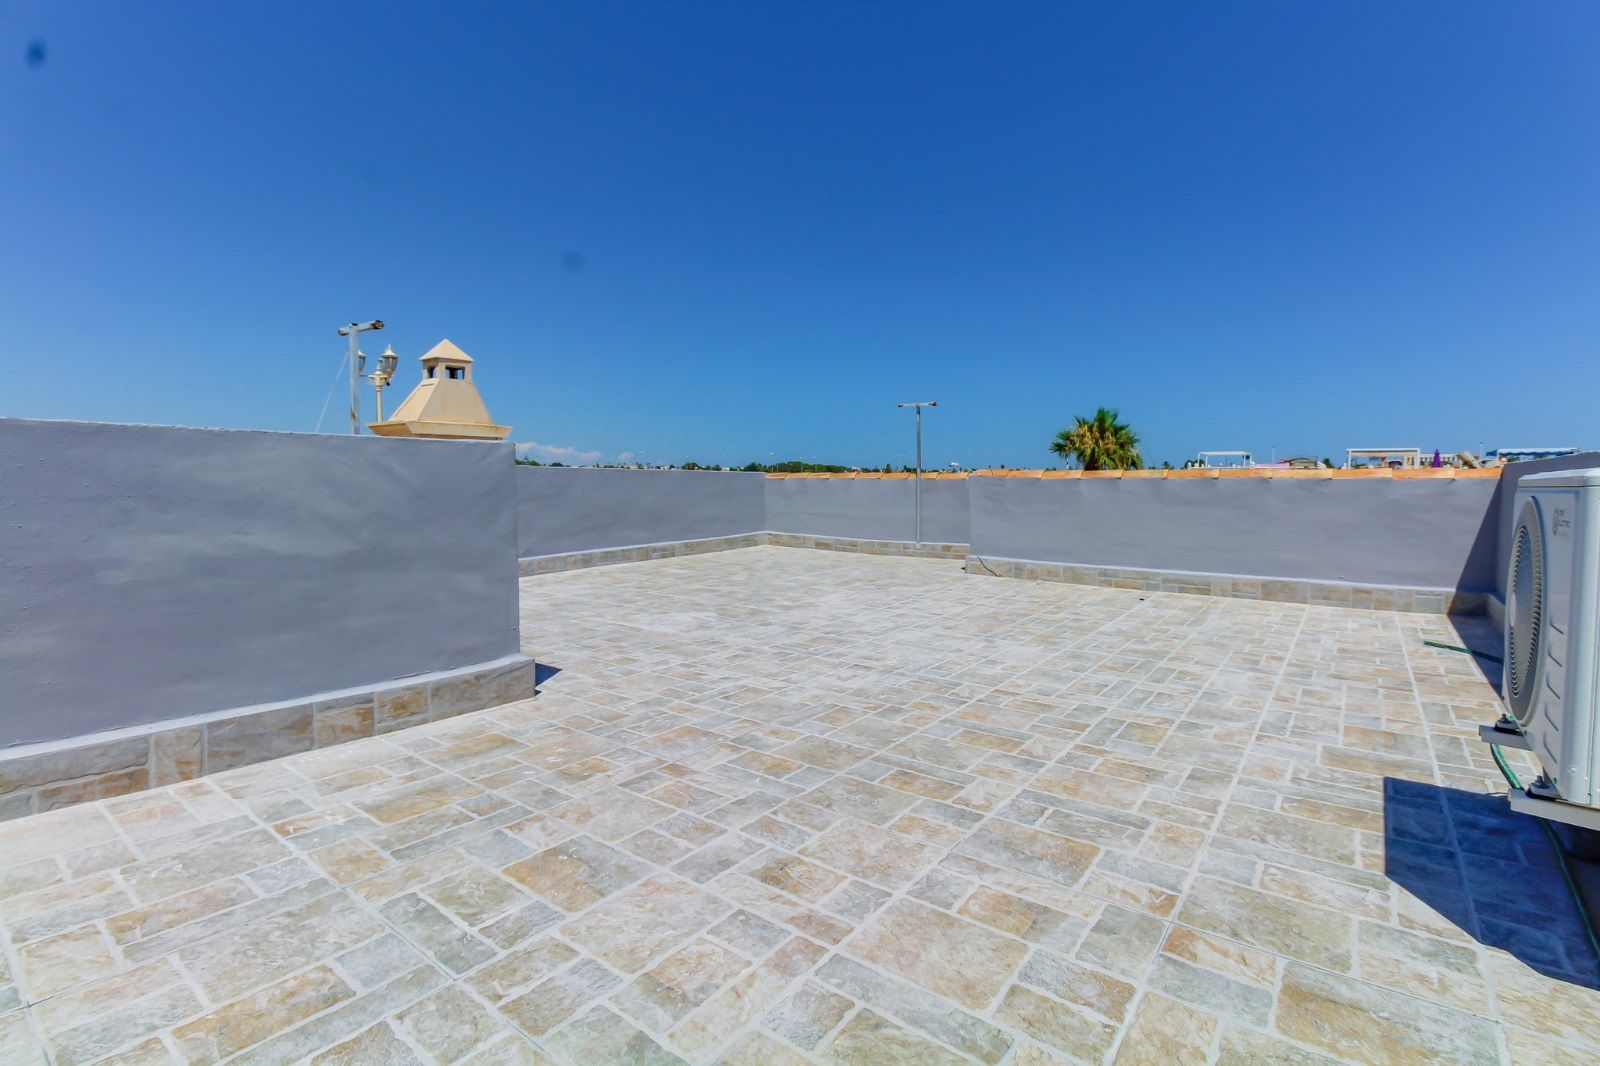 Upstairs apartment for sale with a sunny roof terrace in Paraje Natural, Torrevieja.